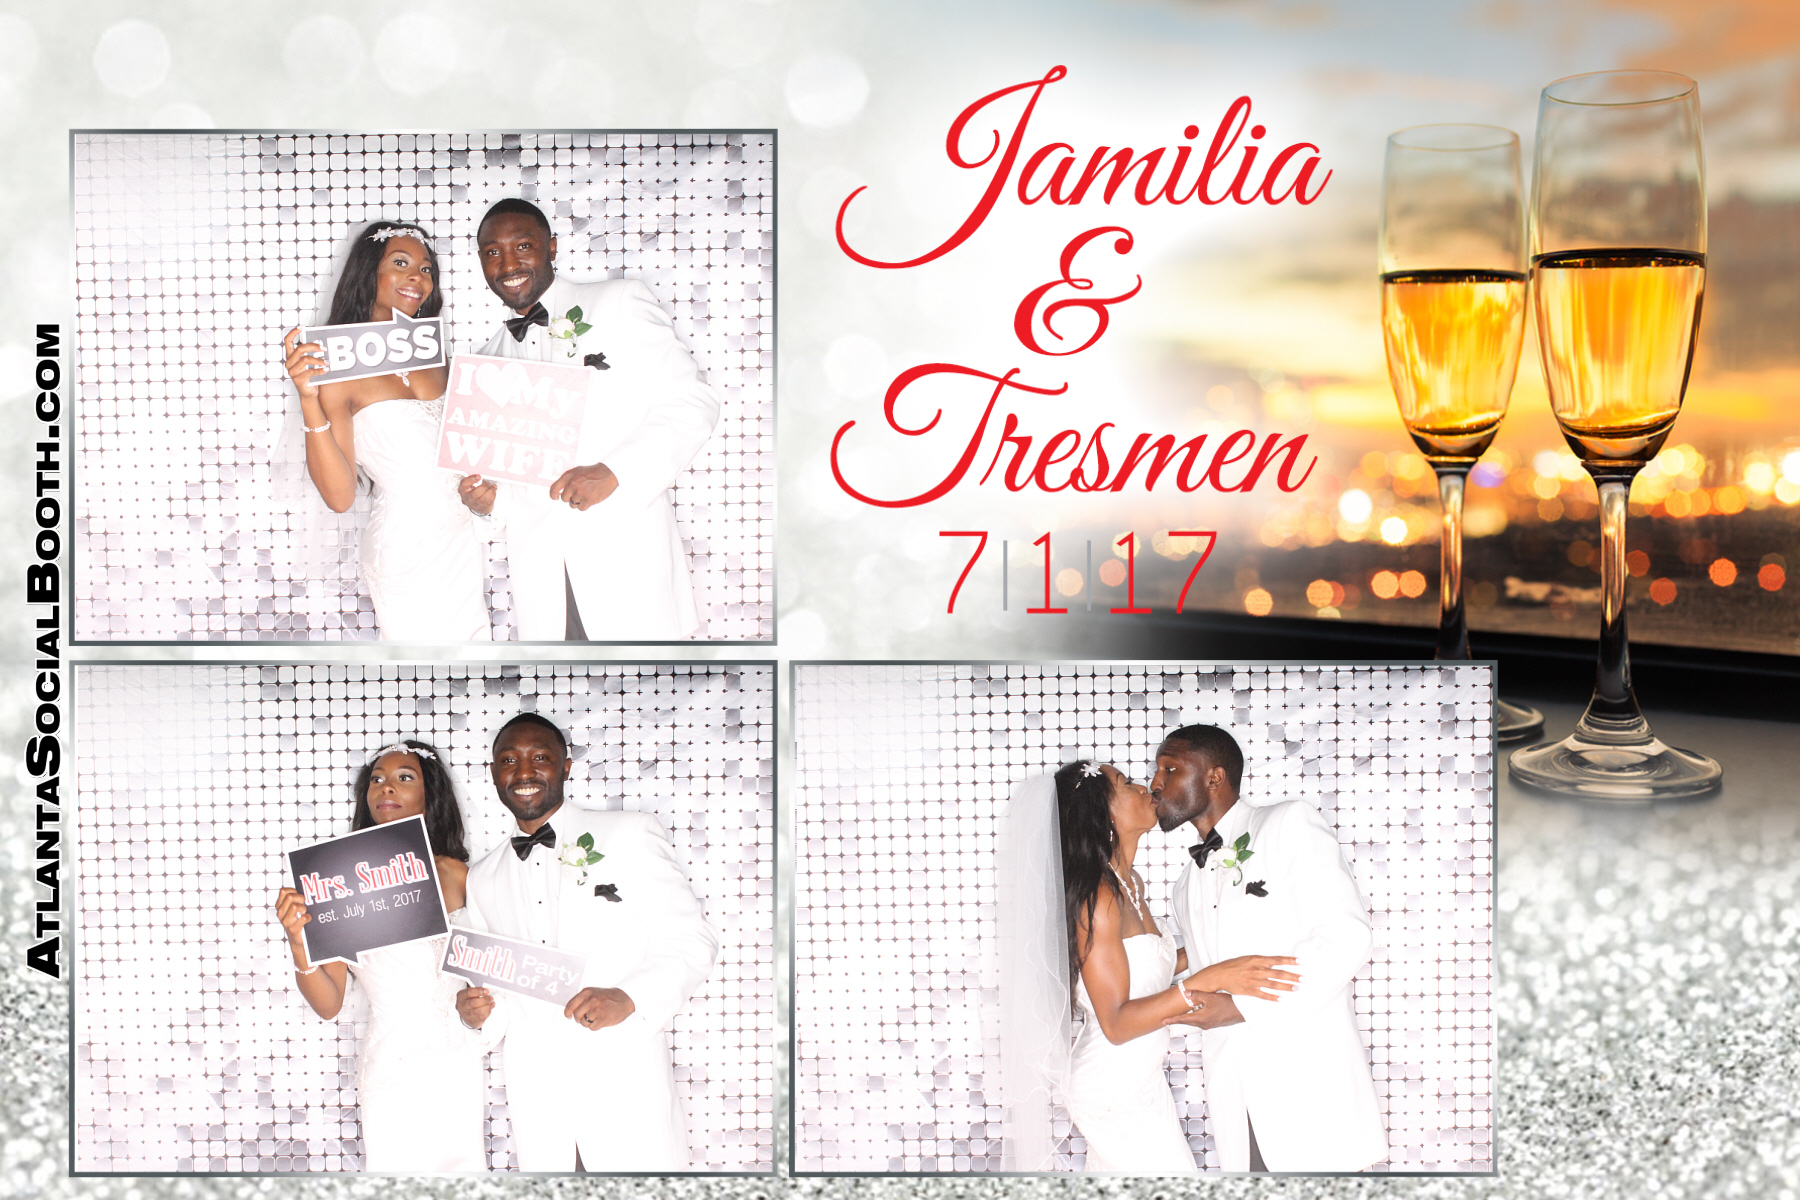 Jamilia & Tresmen Wedding